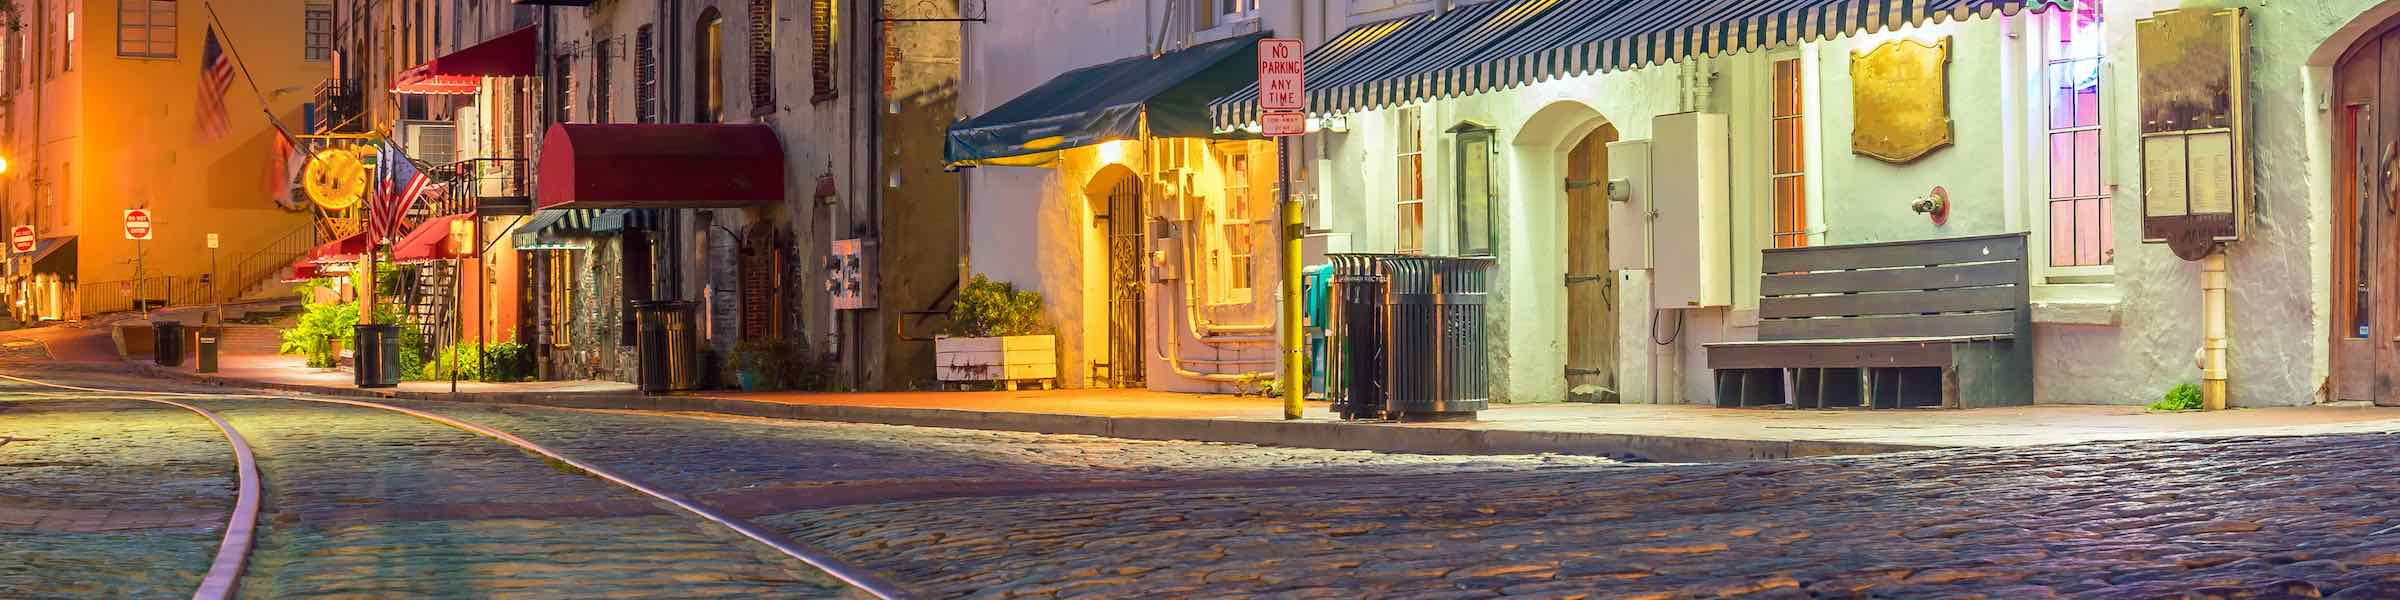 Night view of streetcar tracks on Savannah, GA's cobbled River Street, with illuminated shops and restaurants.